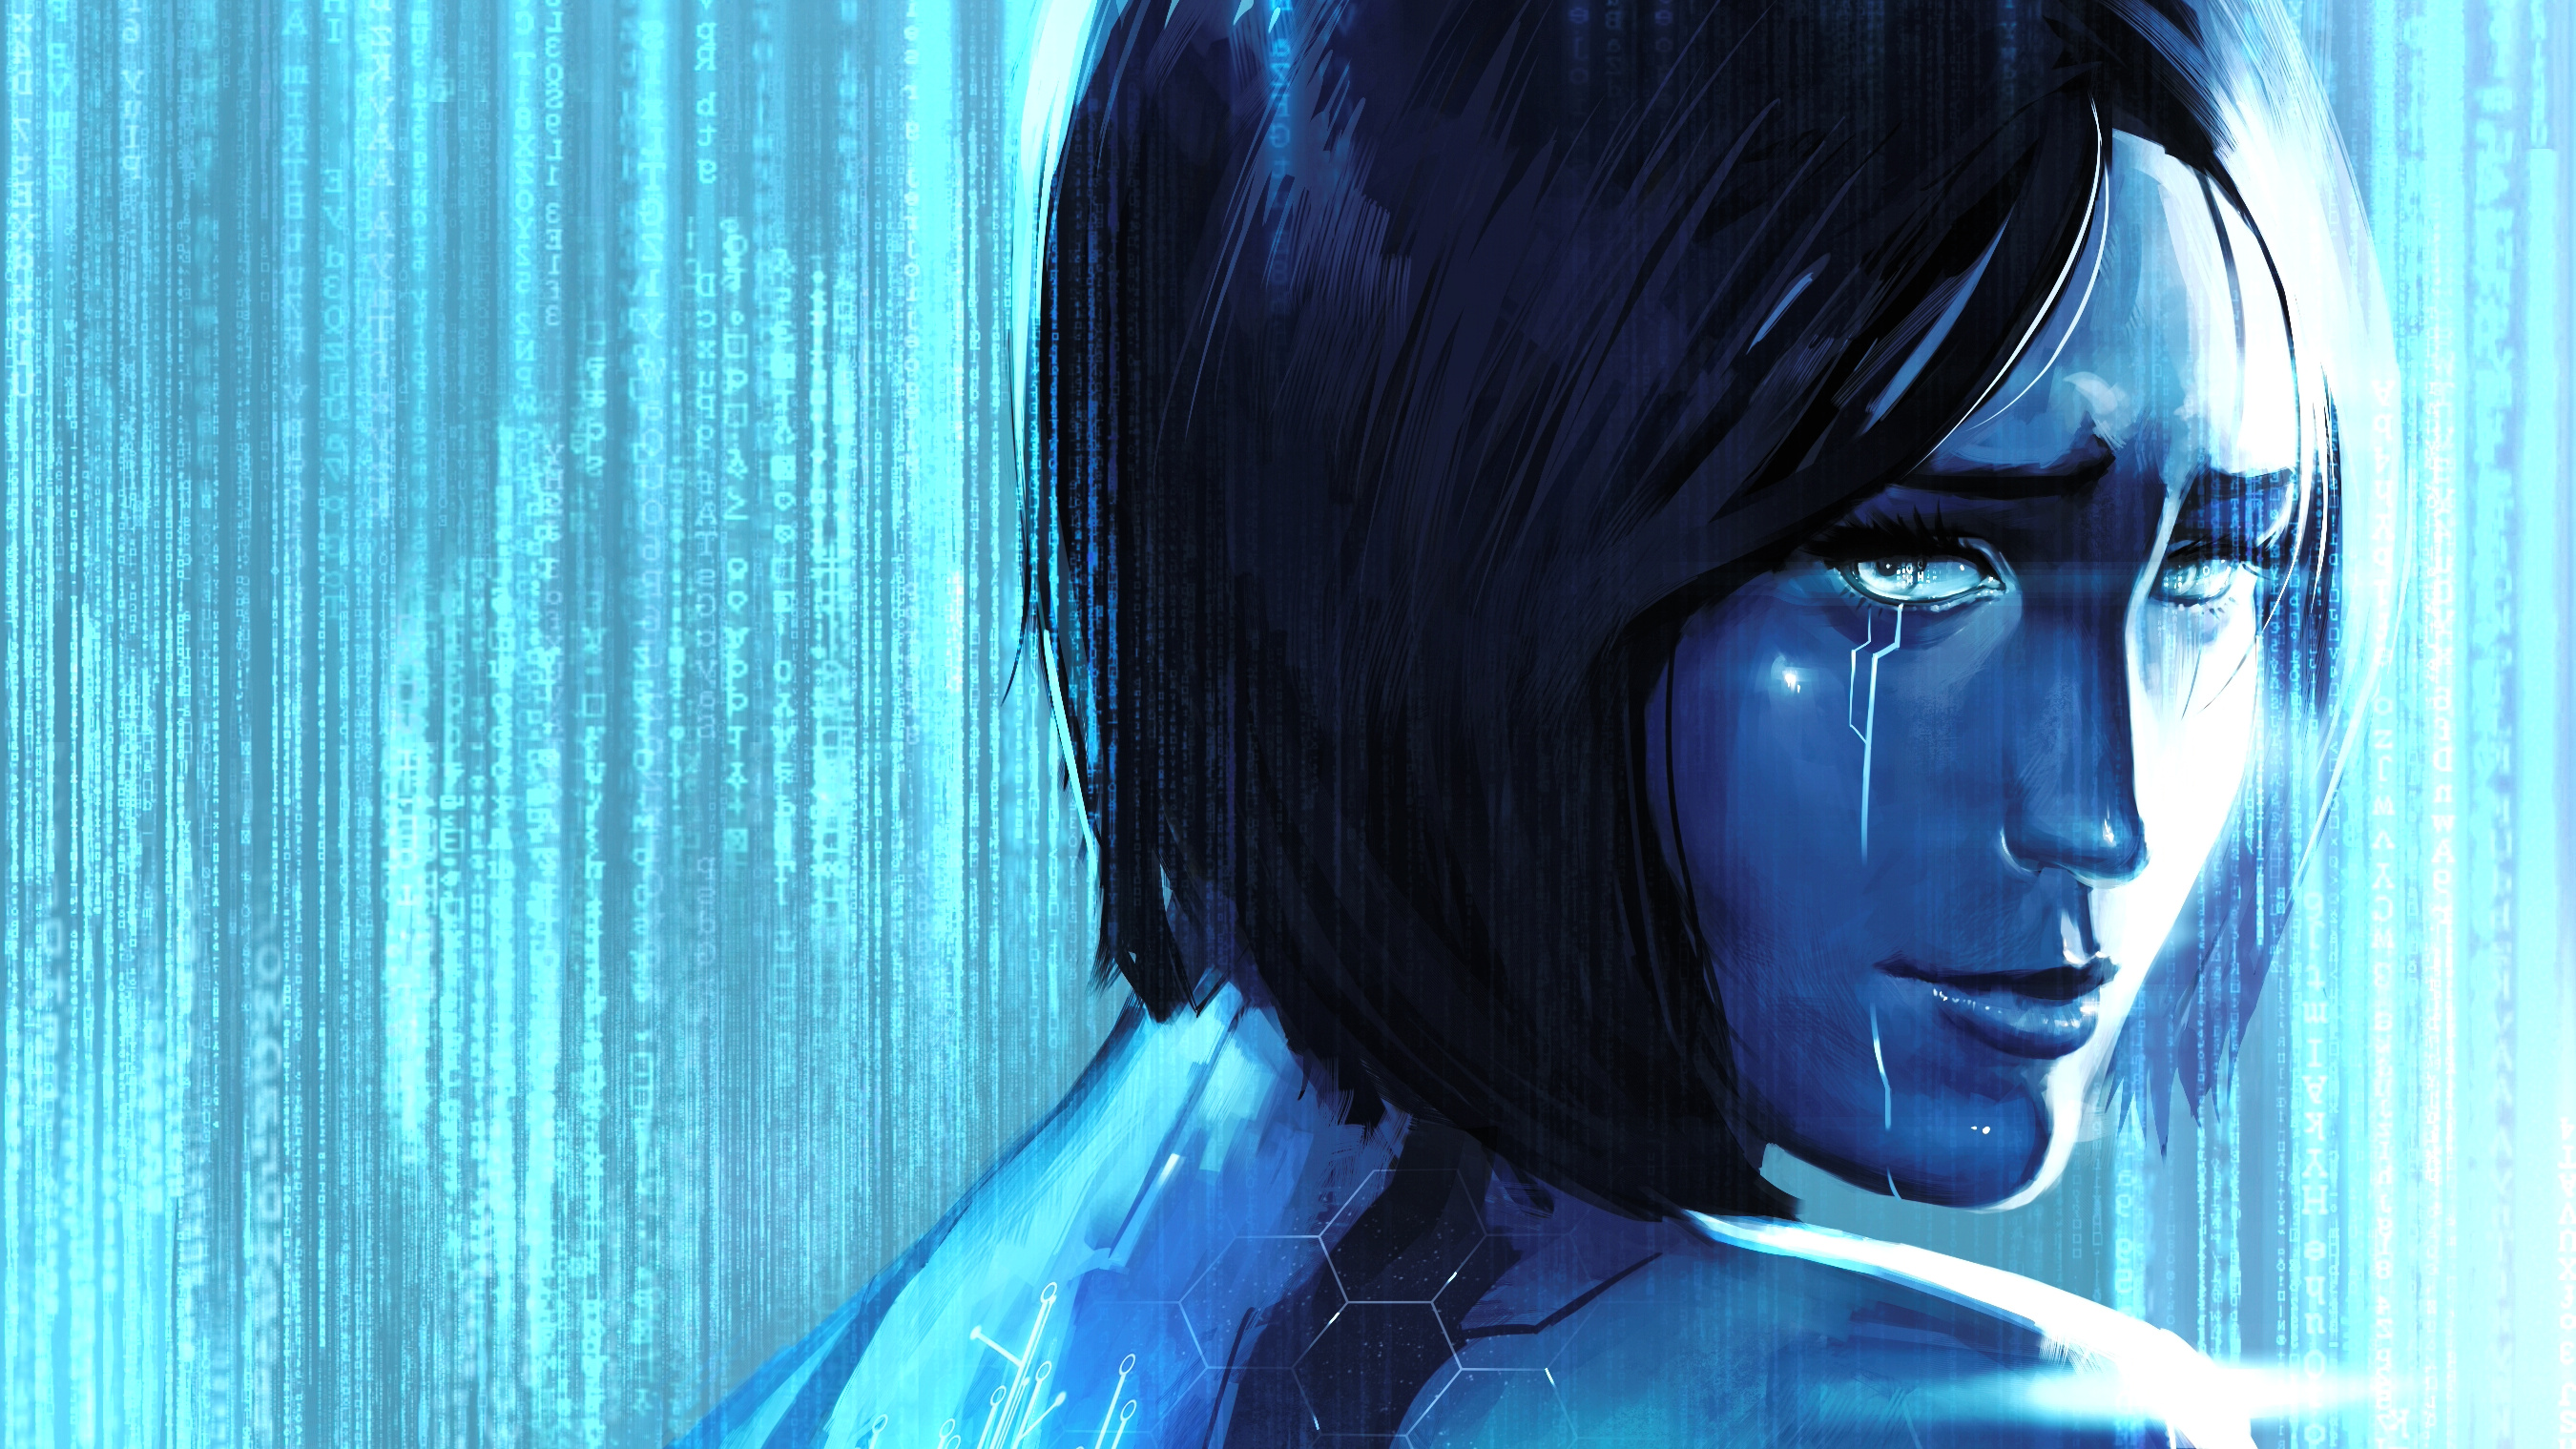 20 Cortana Halo HD Wallpapers Background Images 2700x1519